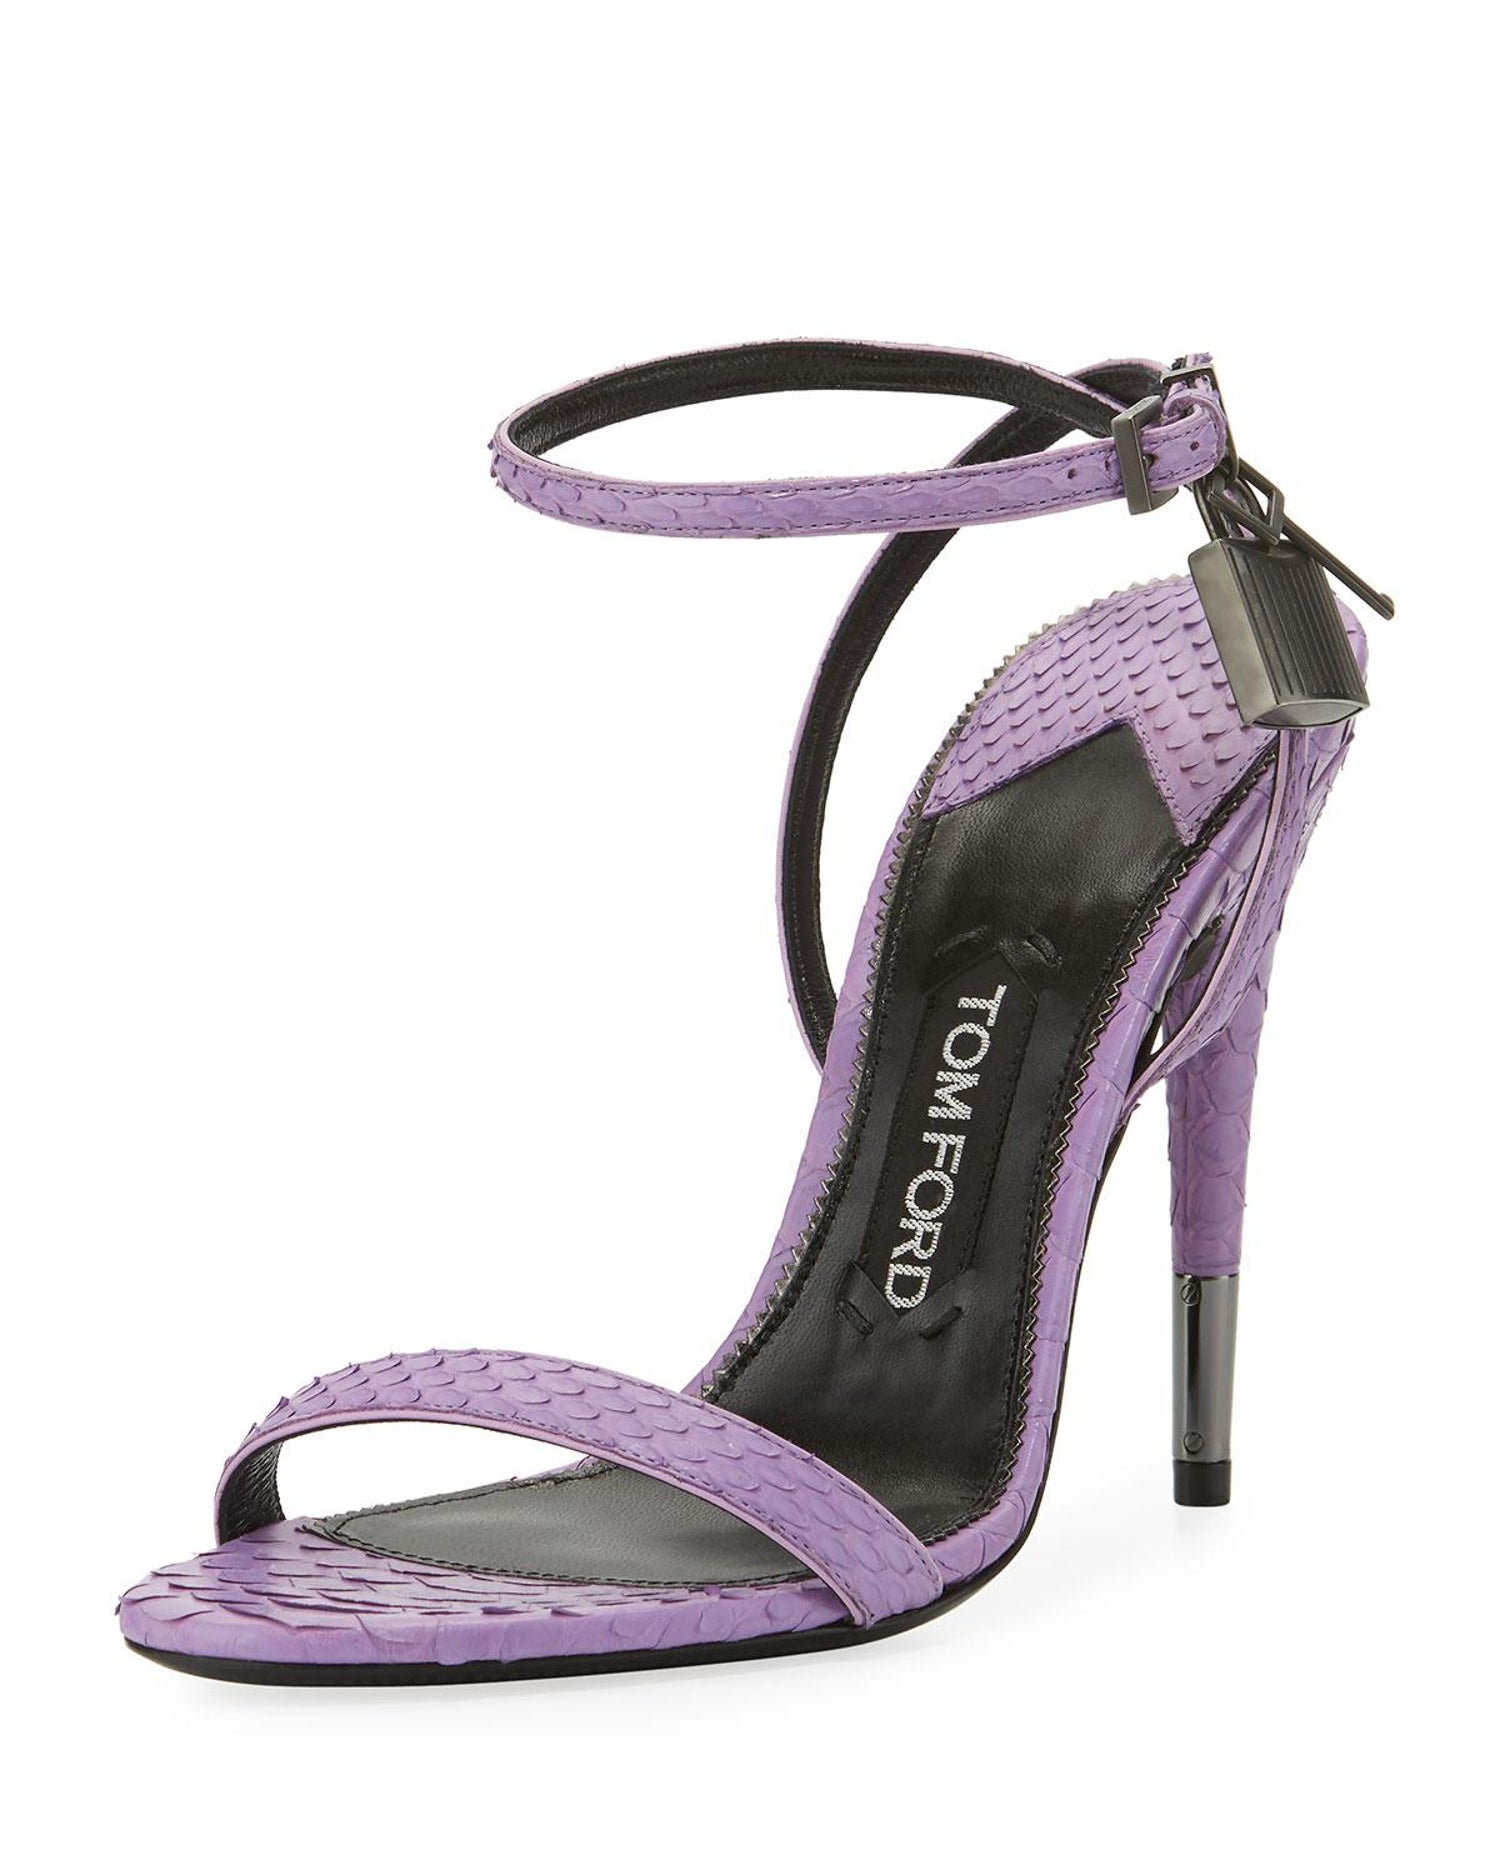 456e2235856 Tom Ford NEW Lavender Snakeskin Lock Strappy Evening Sandals Heels For Sale  at 1stdibs